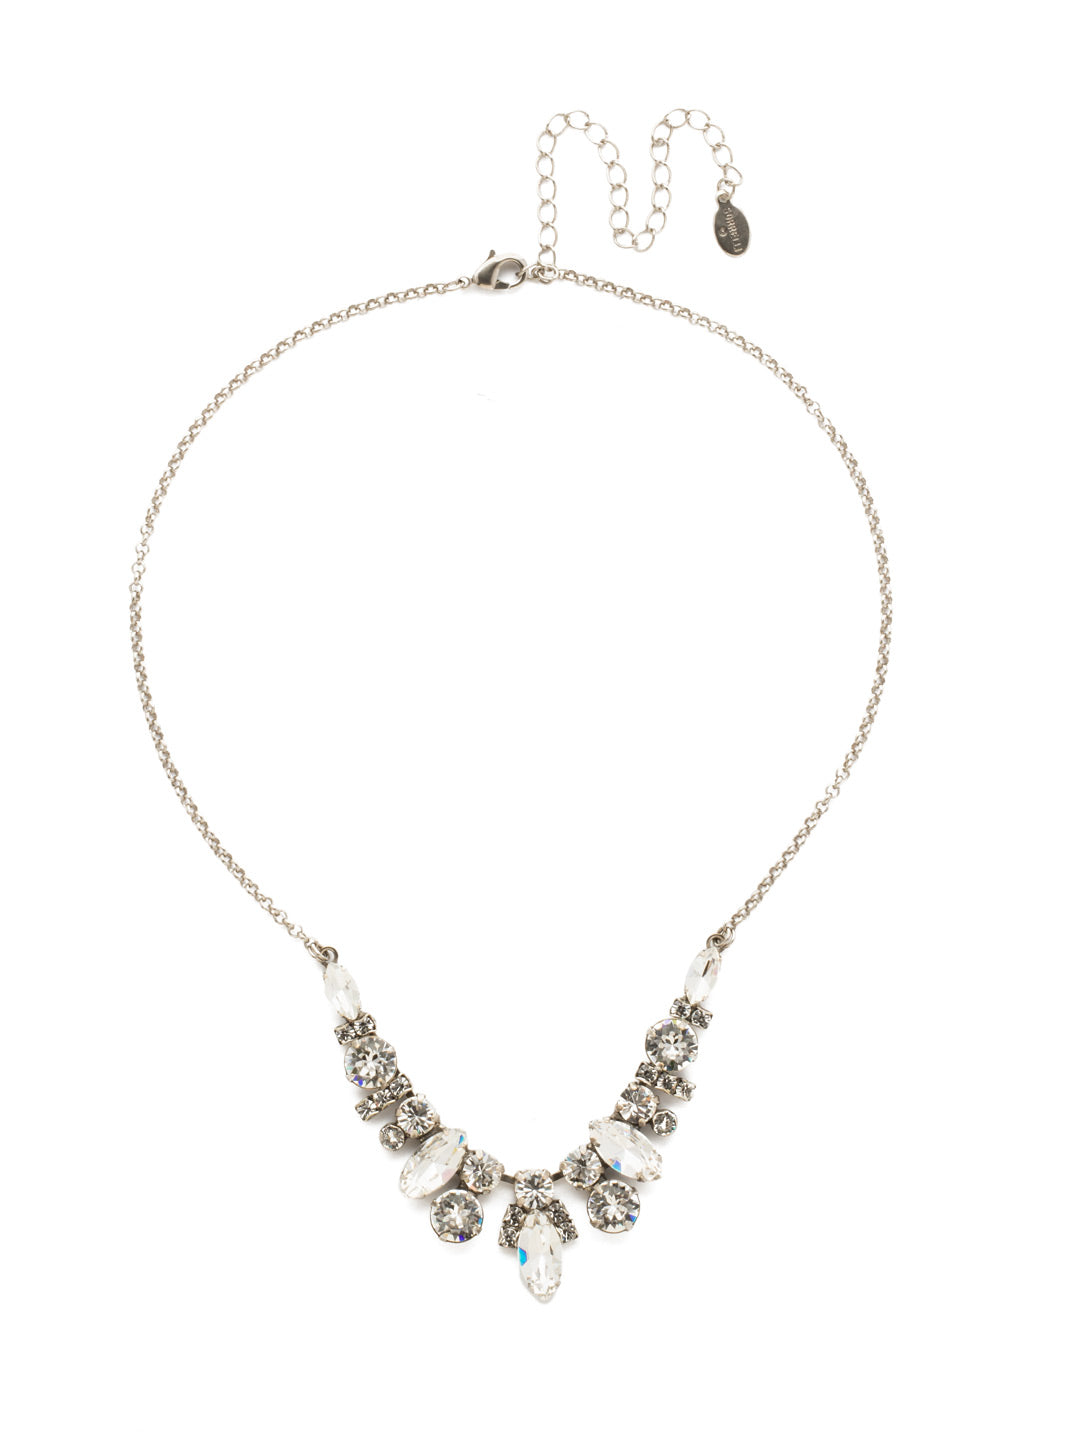 Noveau Navette Statement Necklace - NDG90ASCRY